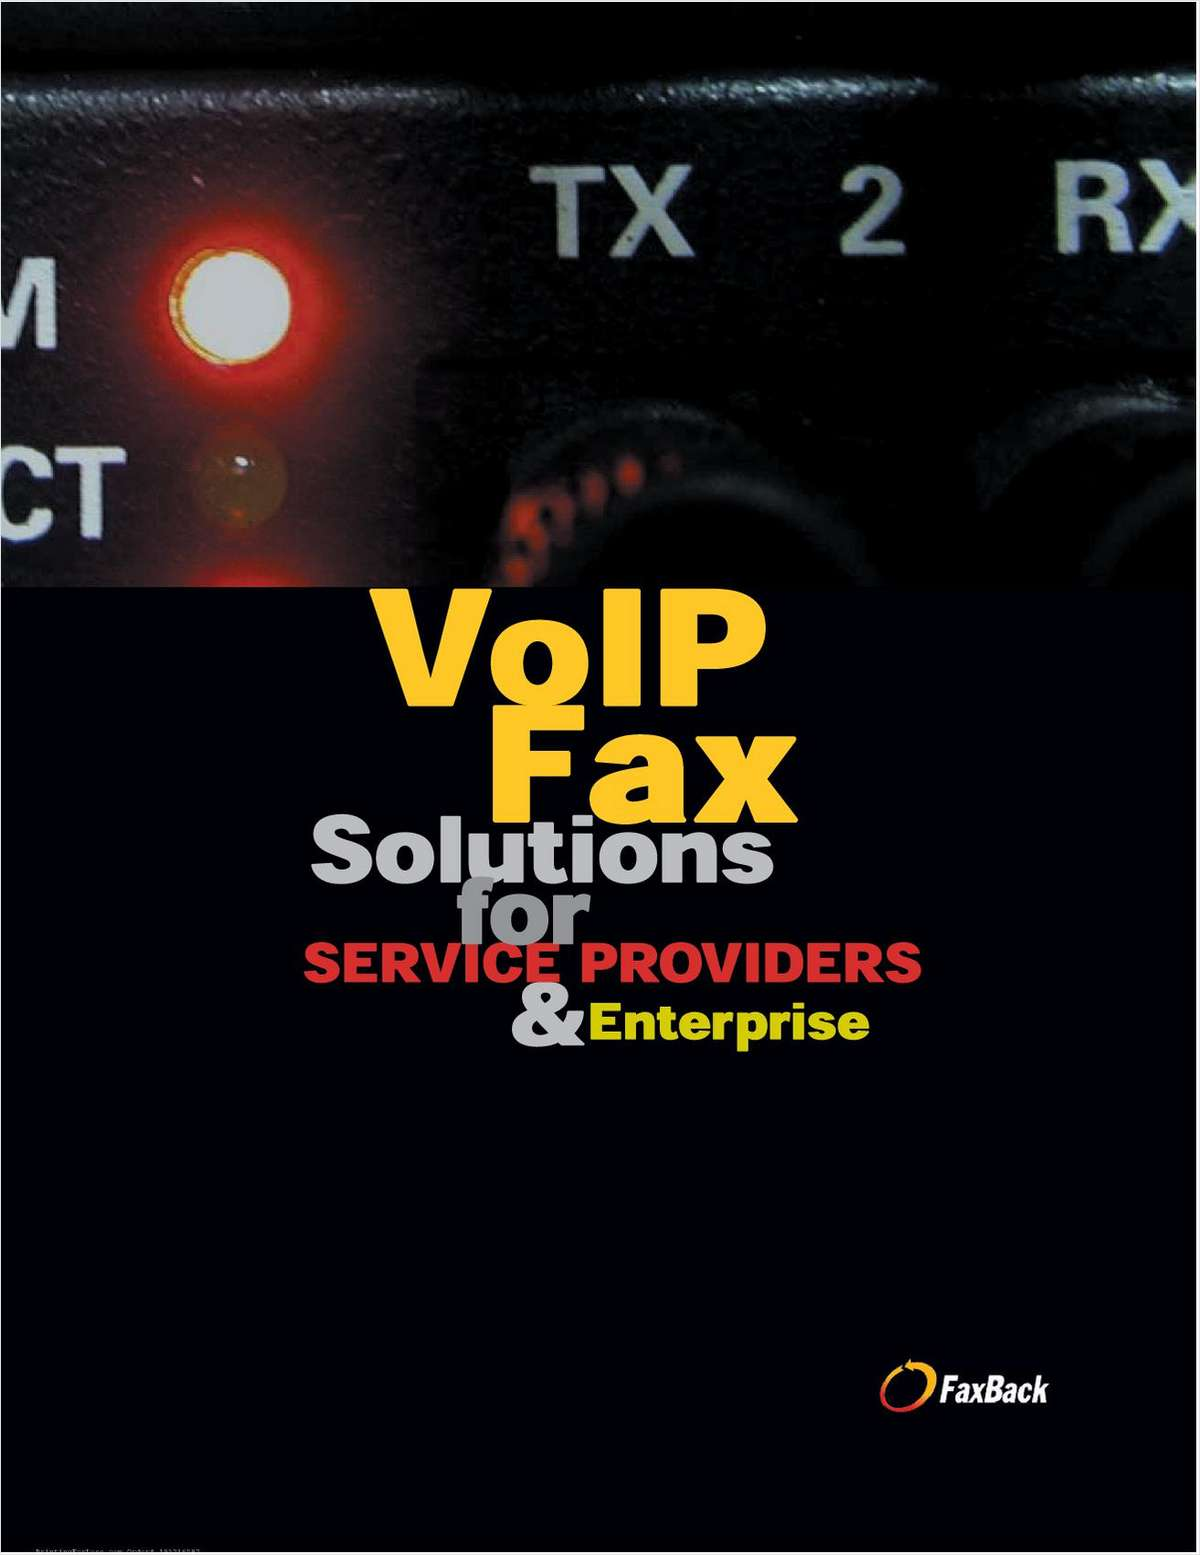 VoIP Fax Solutions for Service Providers & Enterprise - Integrating SIP T.38 Fax with VoIP Networks and Clients